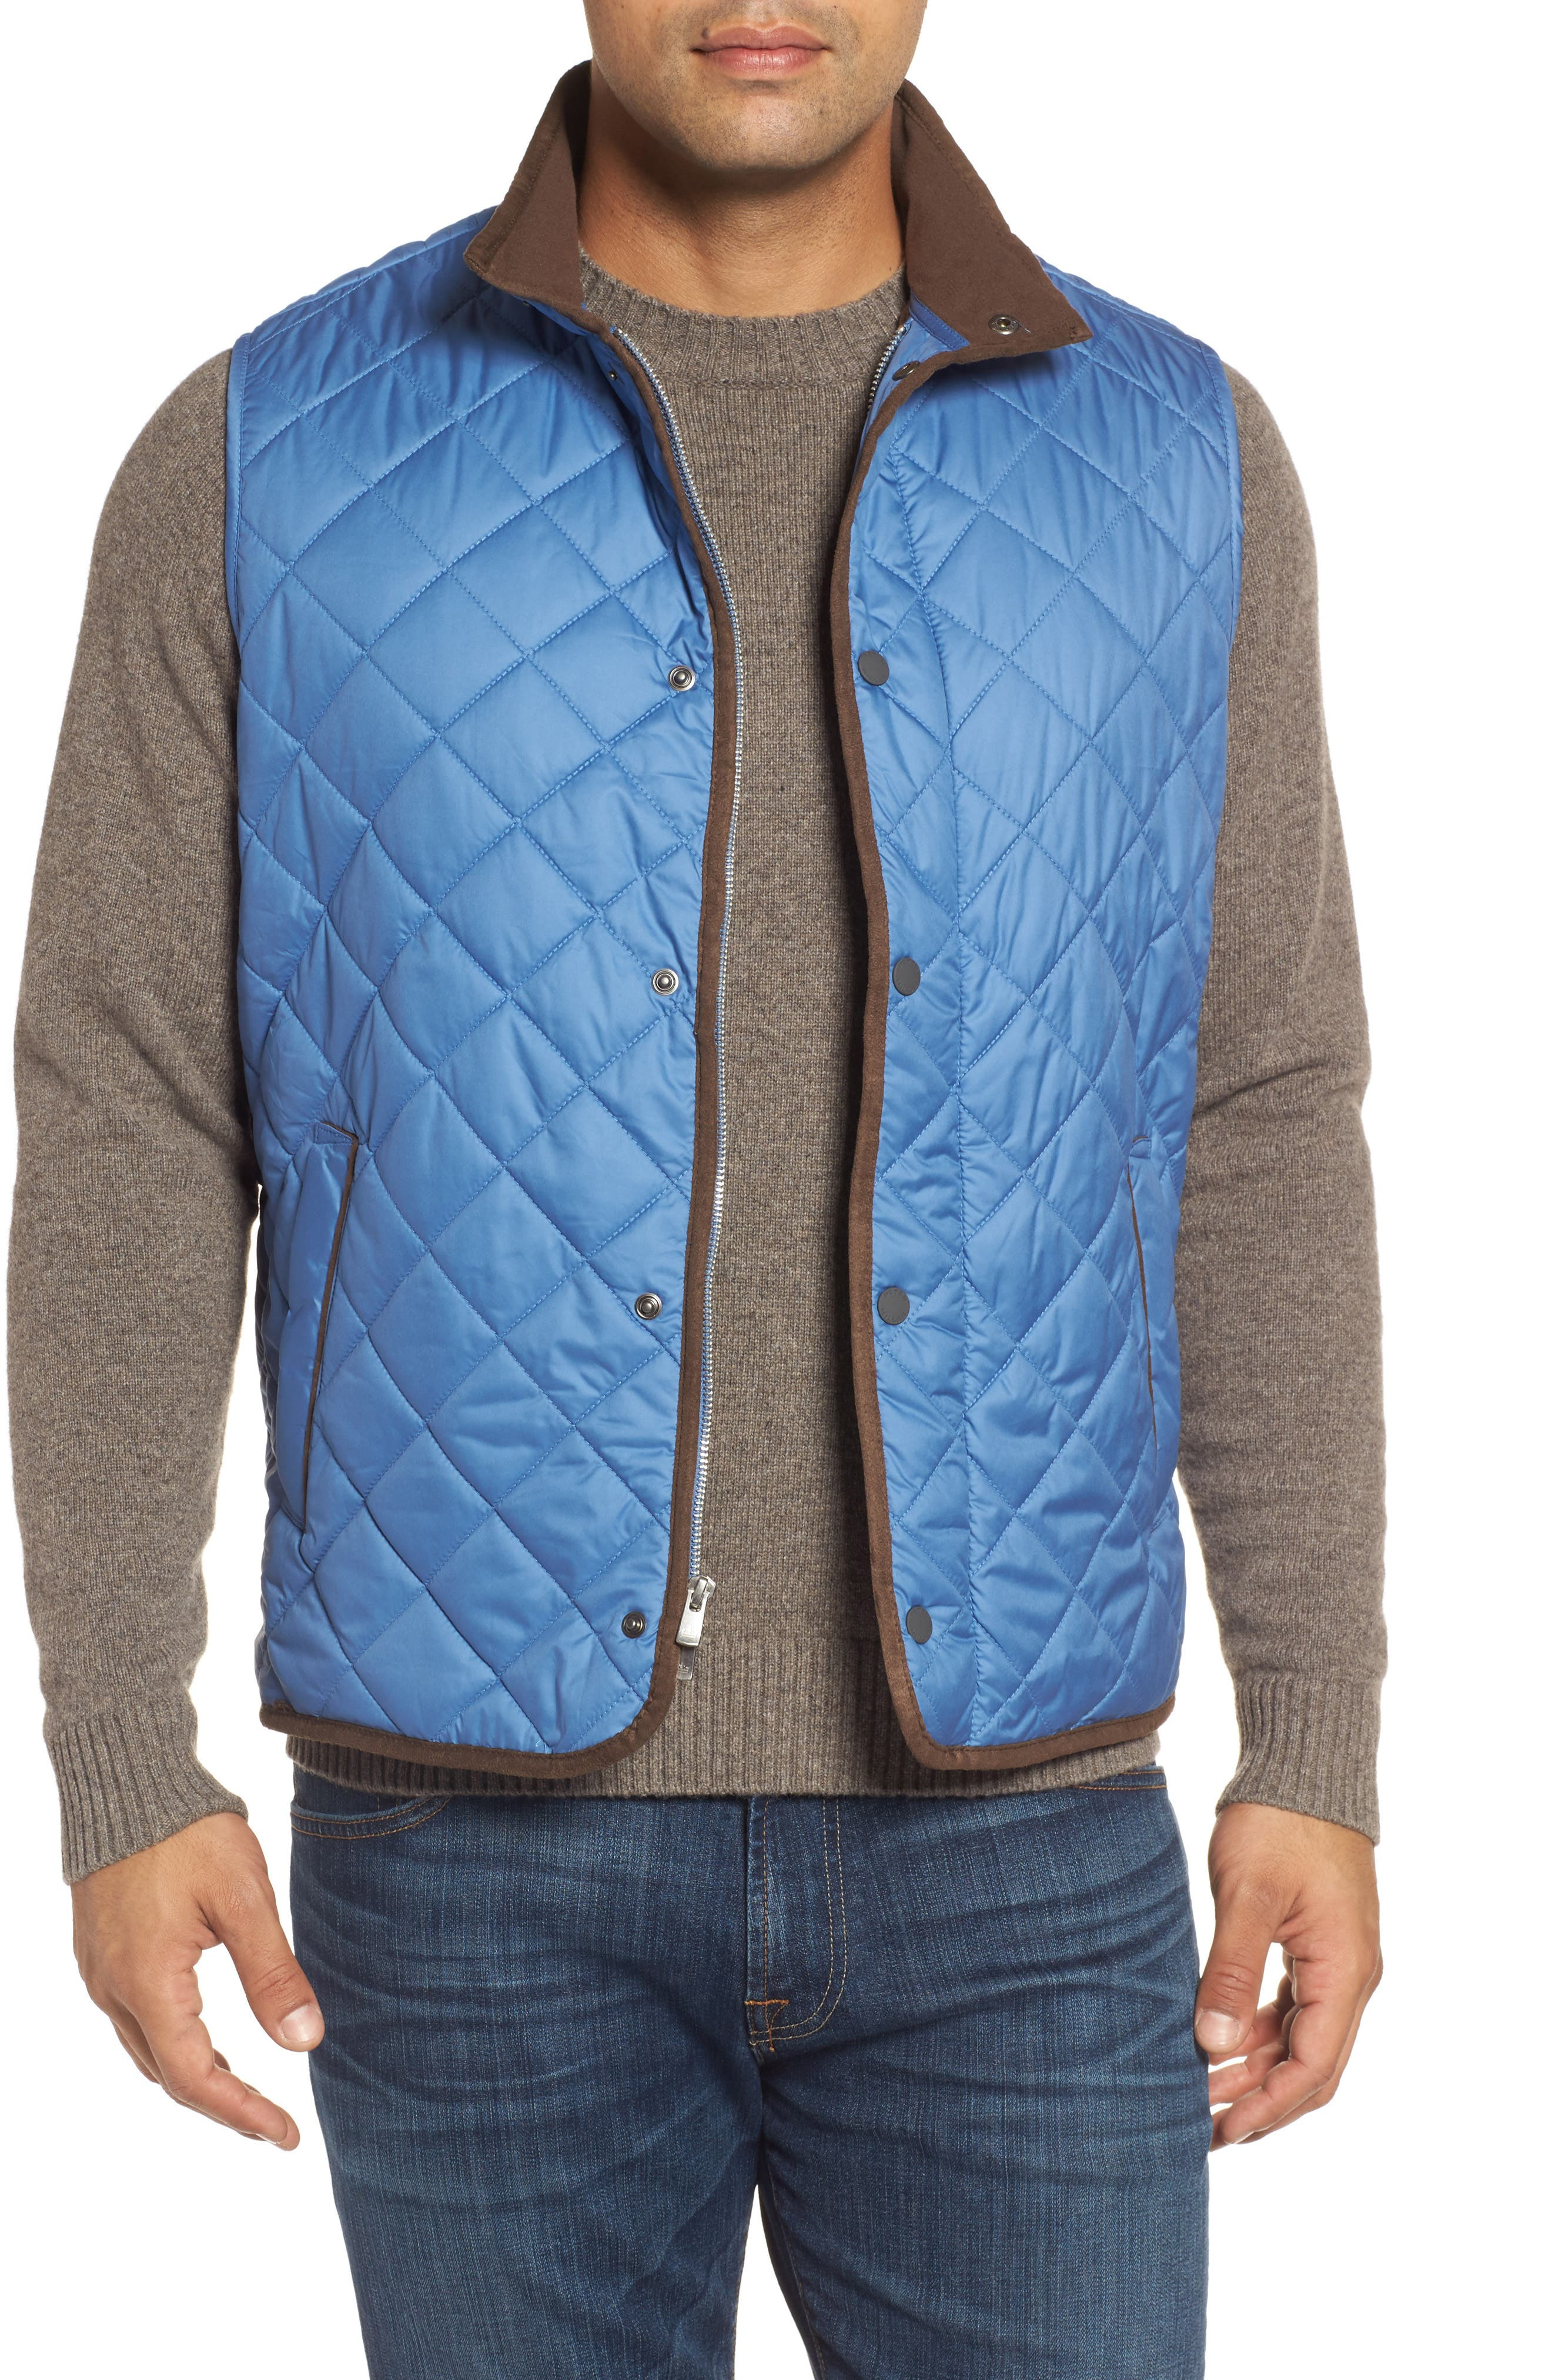 Essex Quilted Vest,                         Main,                         color, Moon Blue